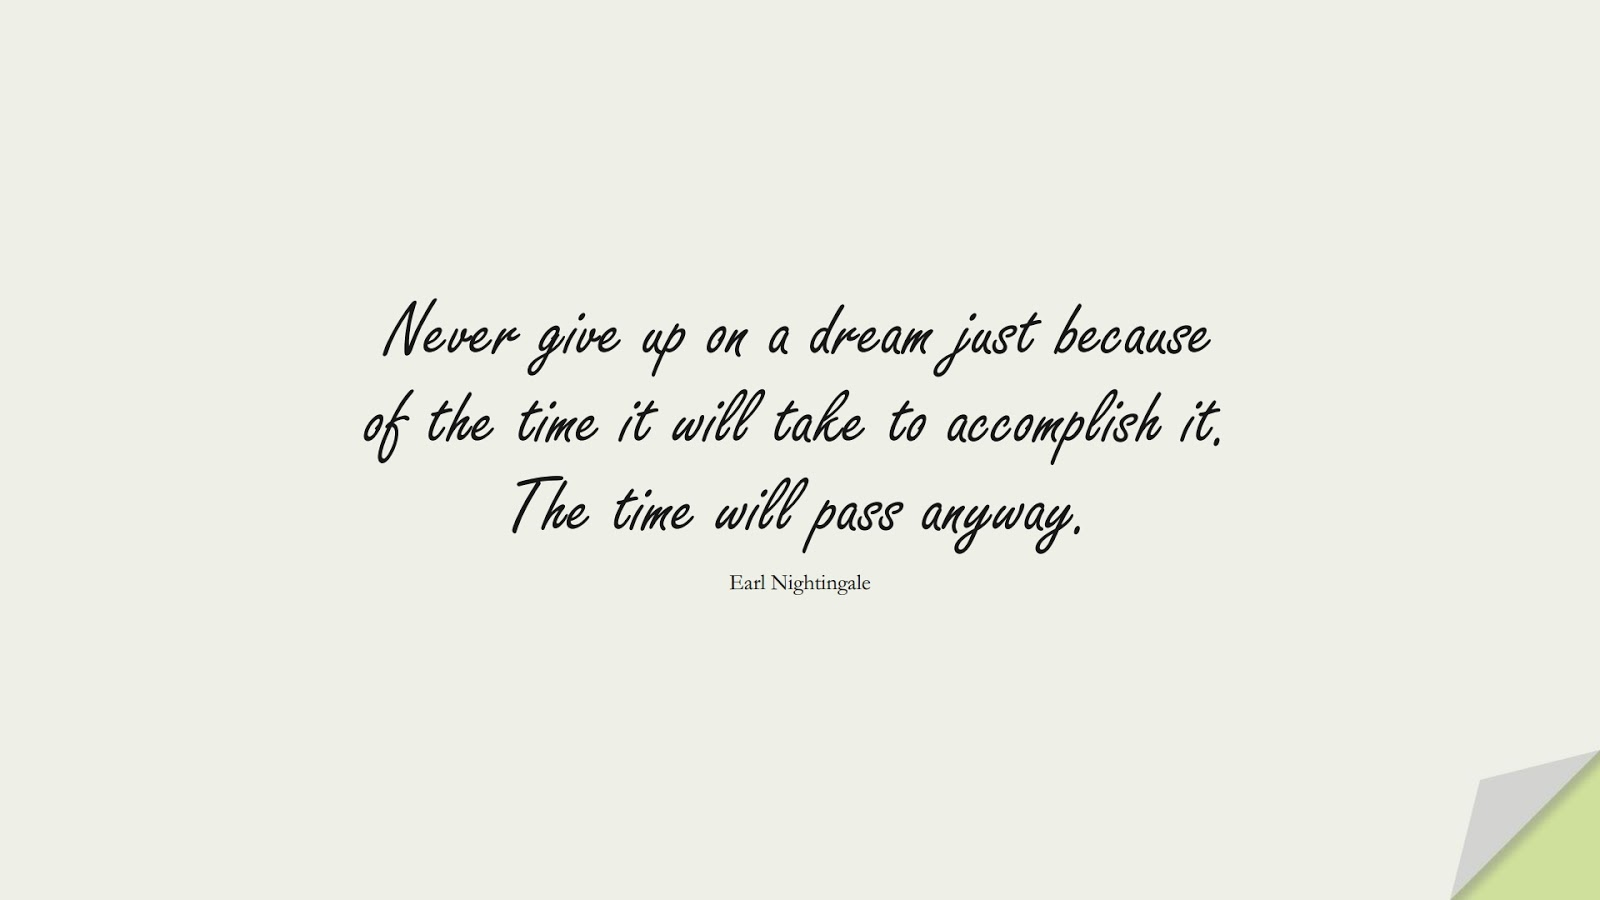 Never give up on a dream just because of the time it will take to accomplish it. The time will pass anyway. (Earl Nightingale);  #NeverGiveUpQuotes